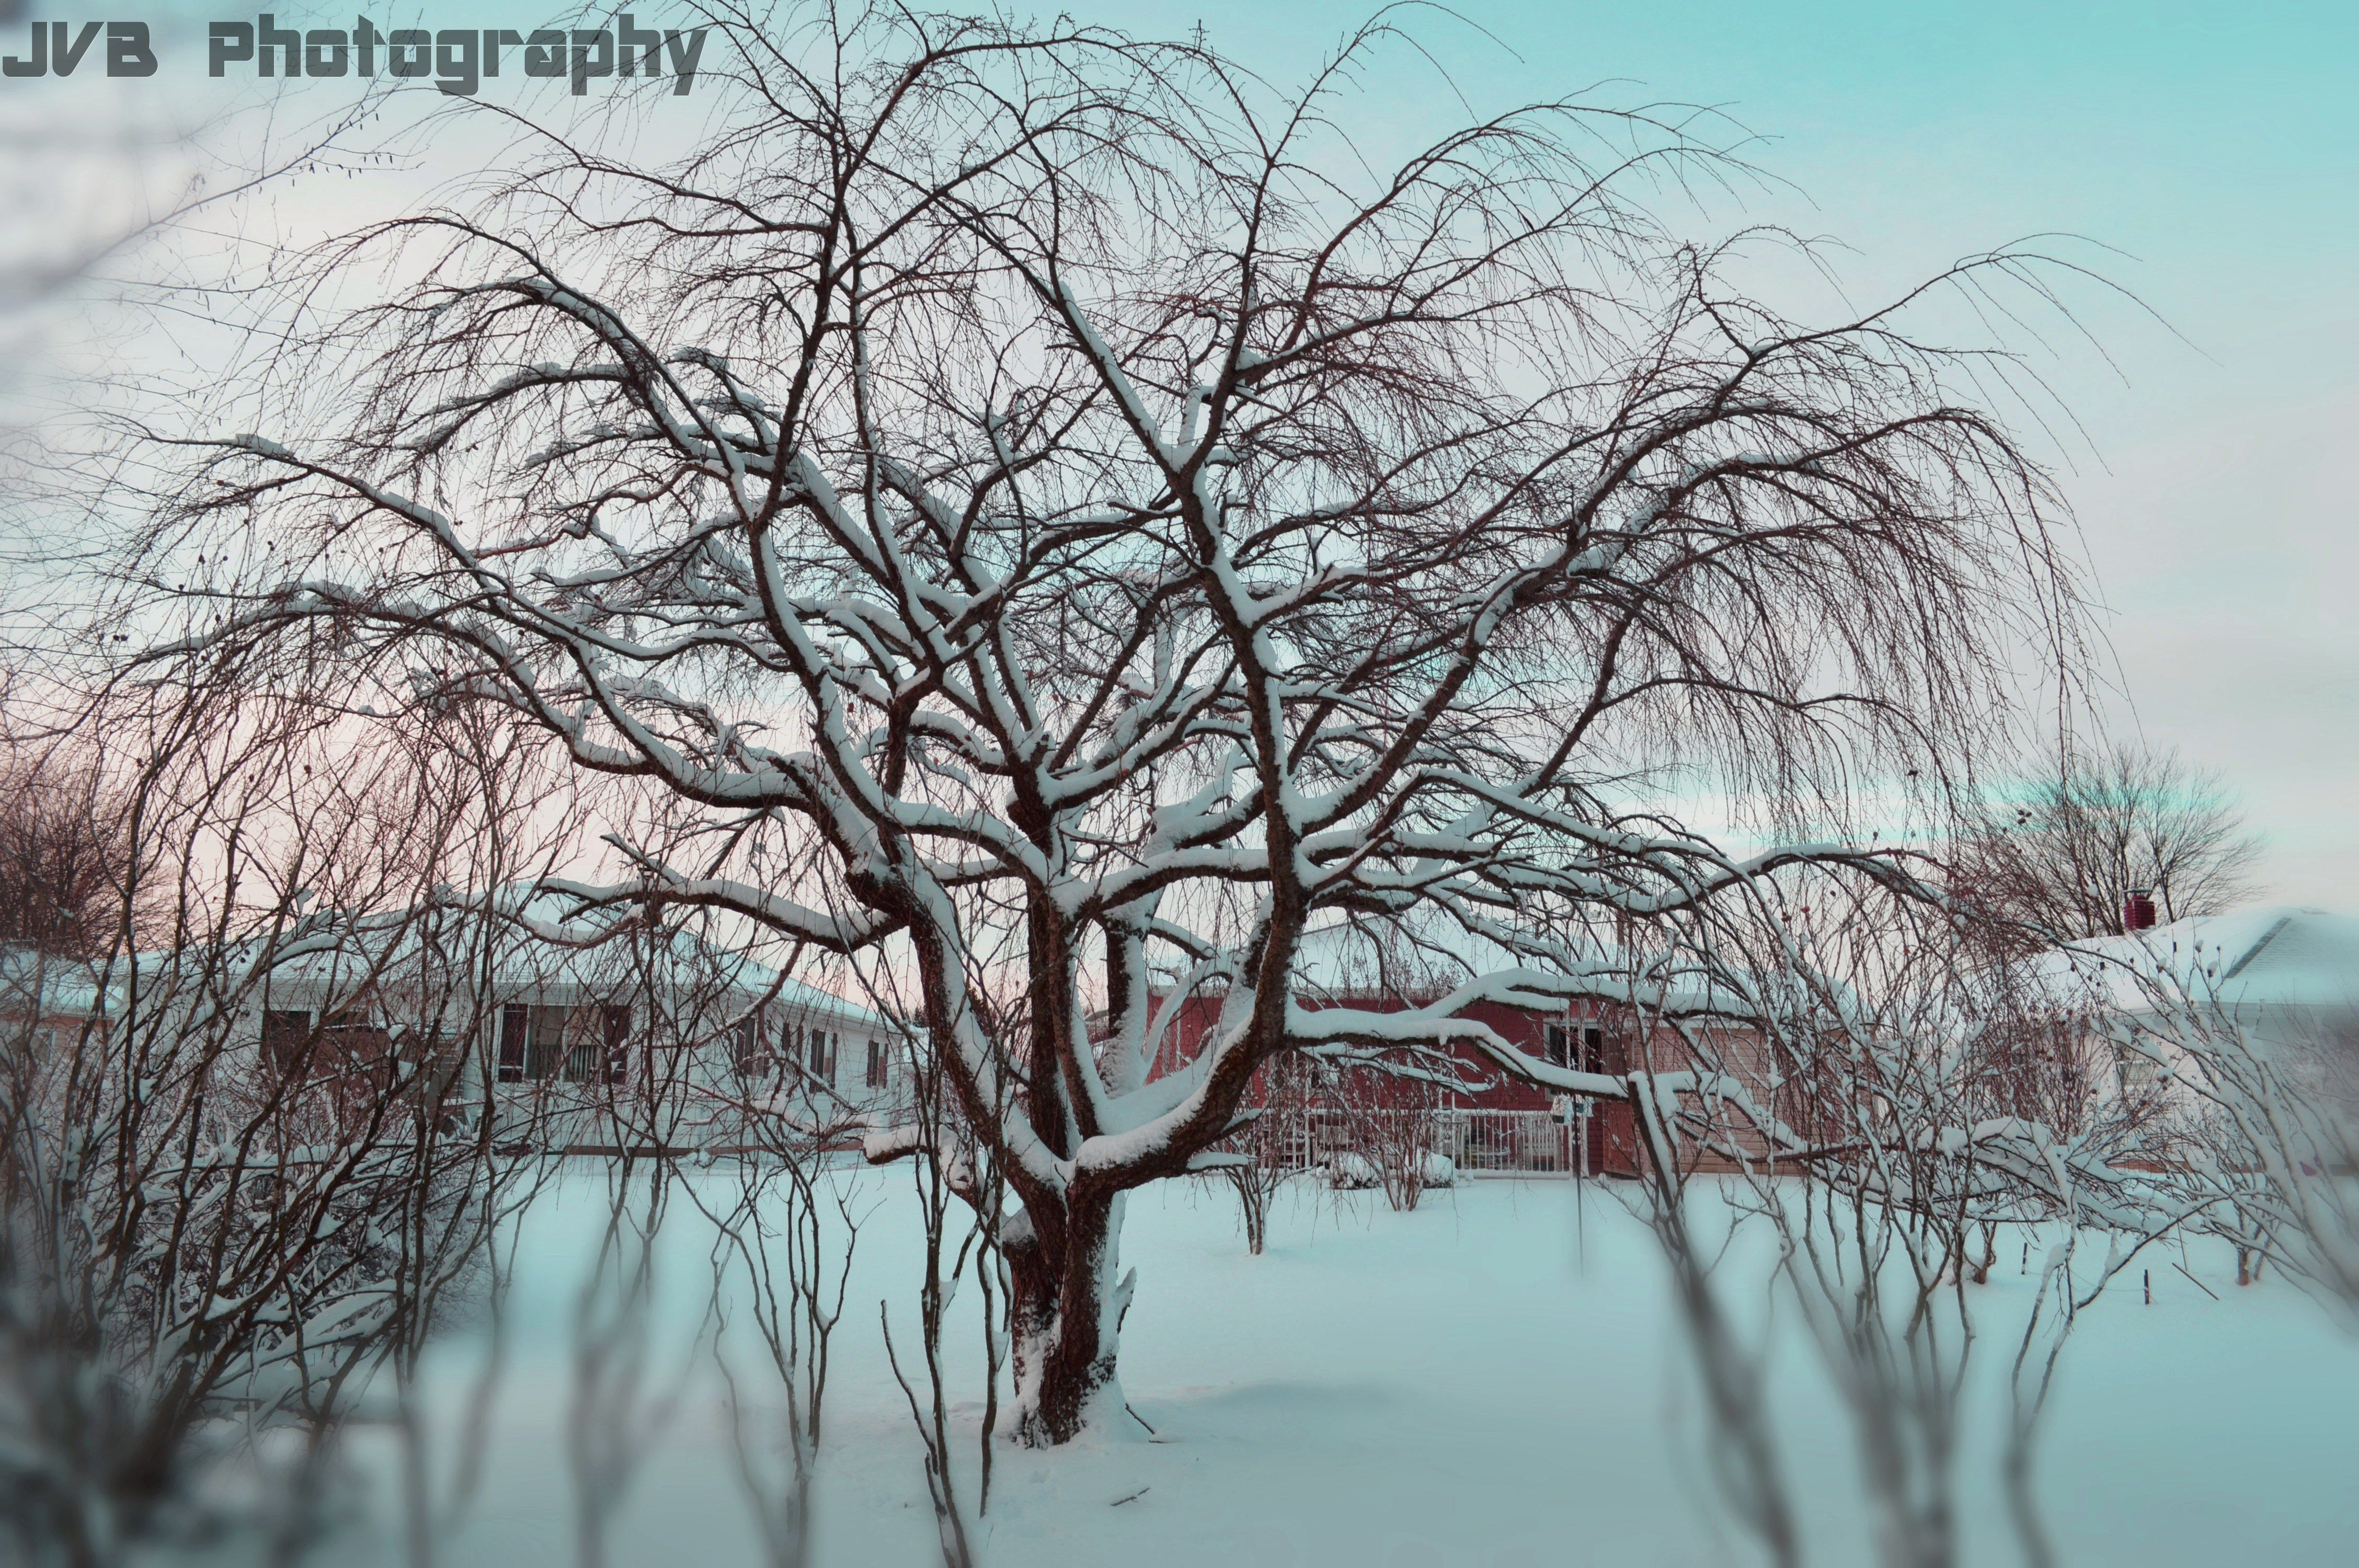 Winter Cherry Blossom Tree   JVB Photography   Pinterest Pictures Trees In Winter Pinterest